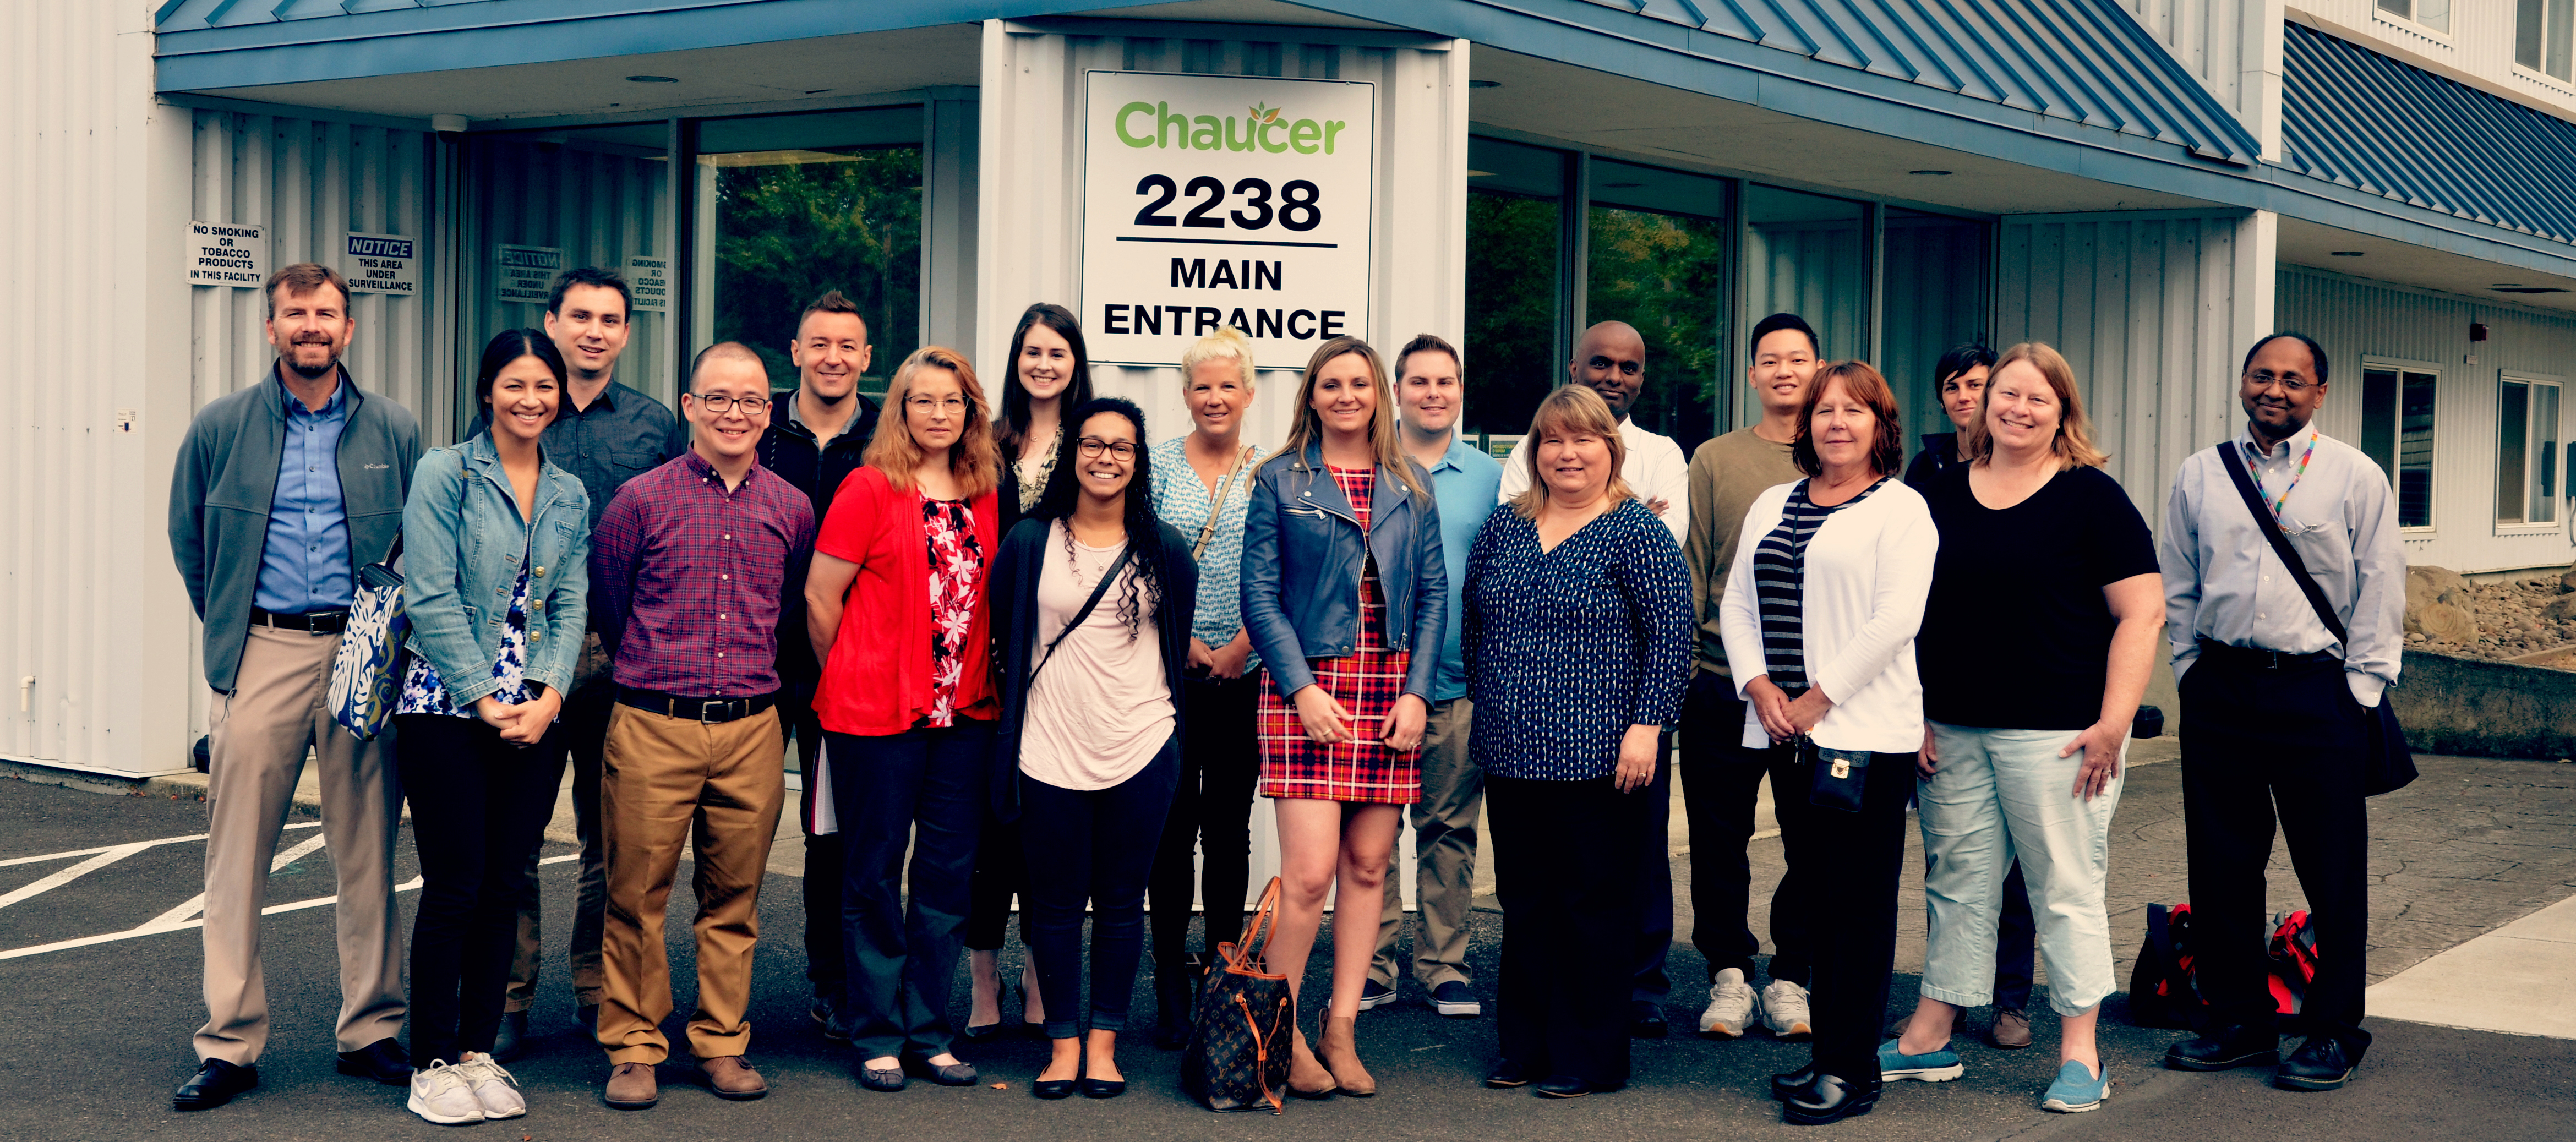 Students visit Chaucer facility